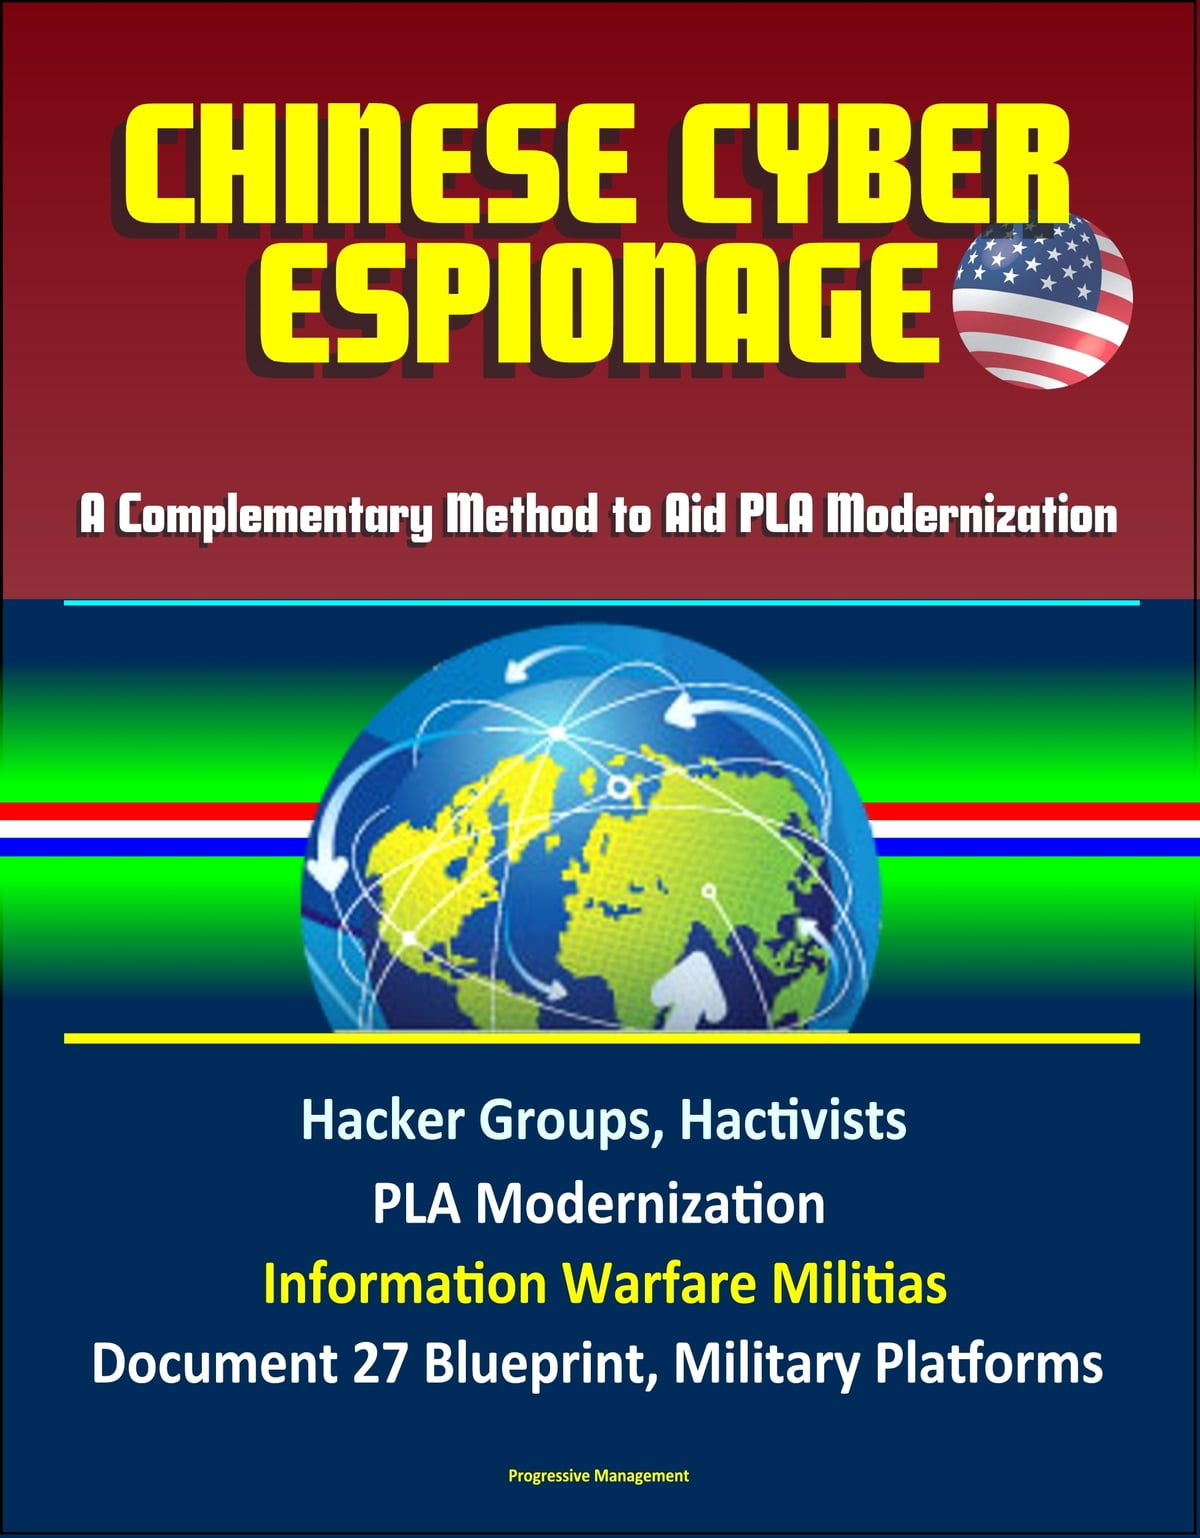 Chinese Cyber Espionage: A Complementary Method to Aid PLA Modernization -  Hacker Groups, Hactivists, PLA Modernization, Information Warfare Militias,